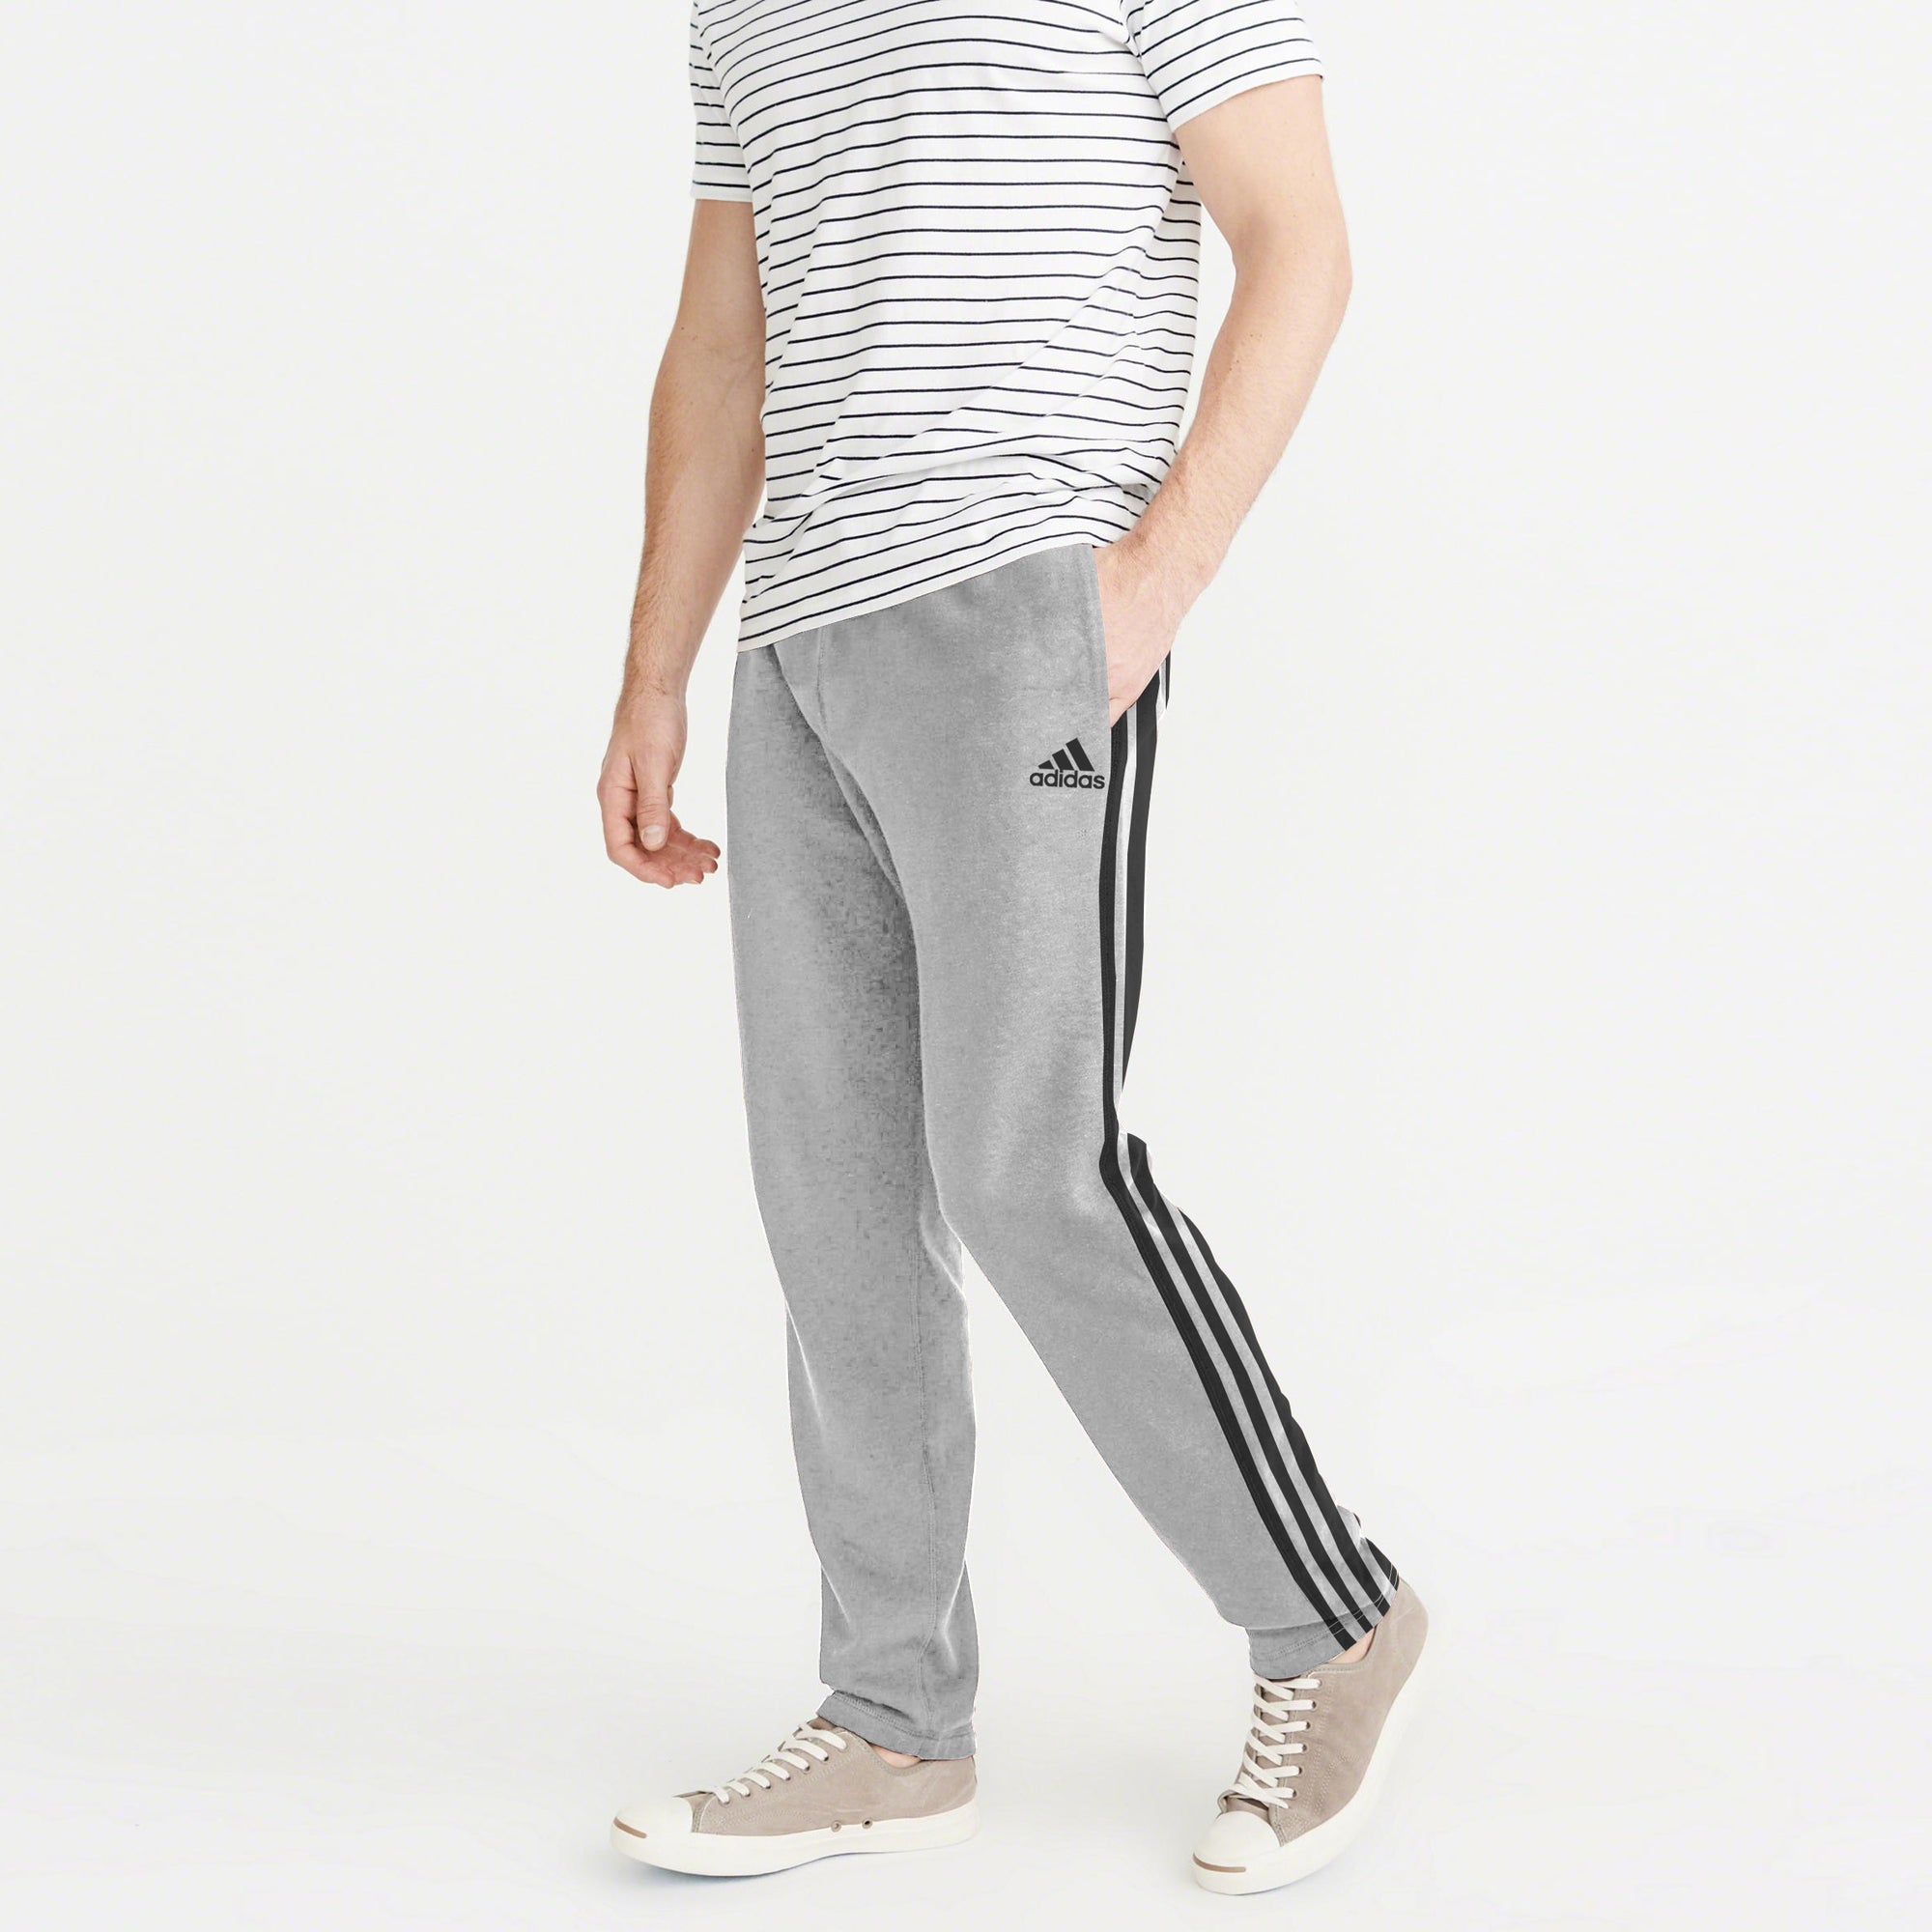 Adidas Single Jersey Regular Fit Trouser For Men-Light Grey With Stripes-NA8723